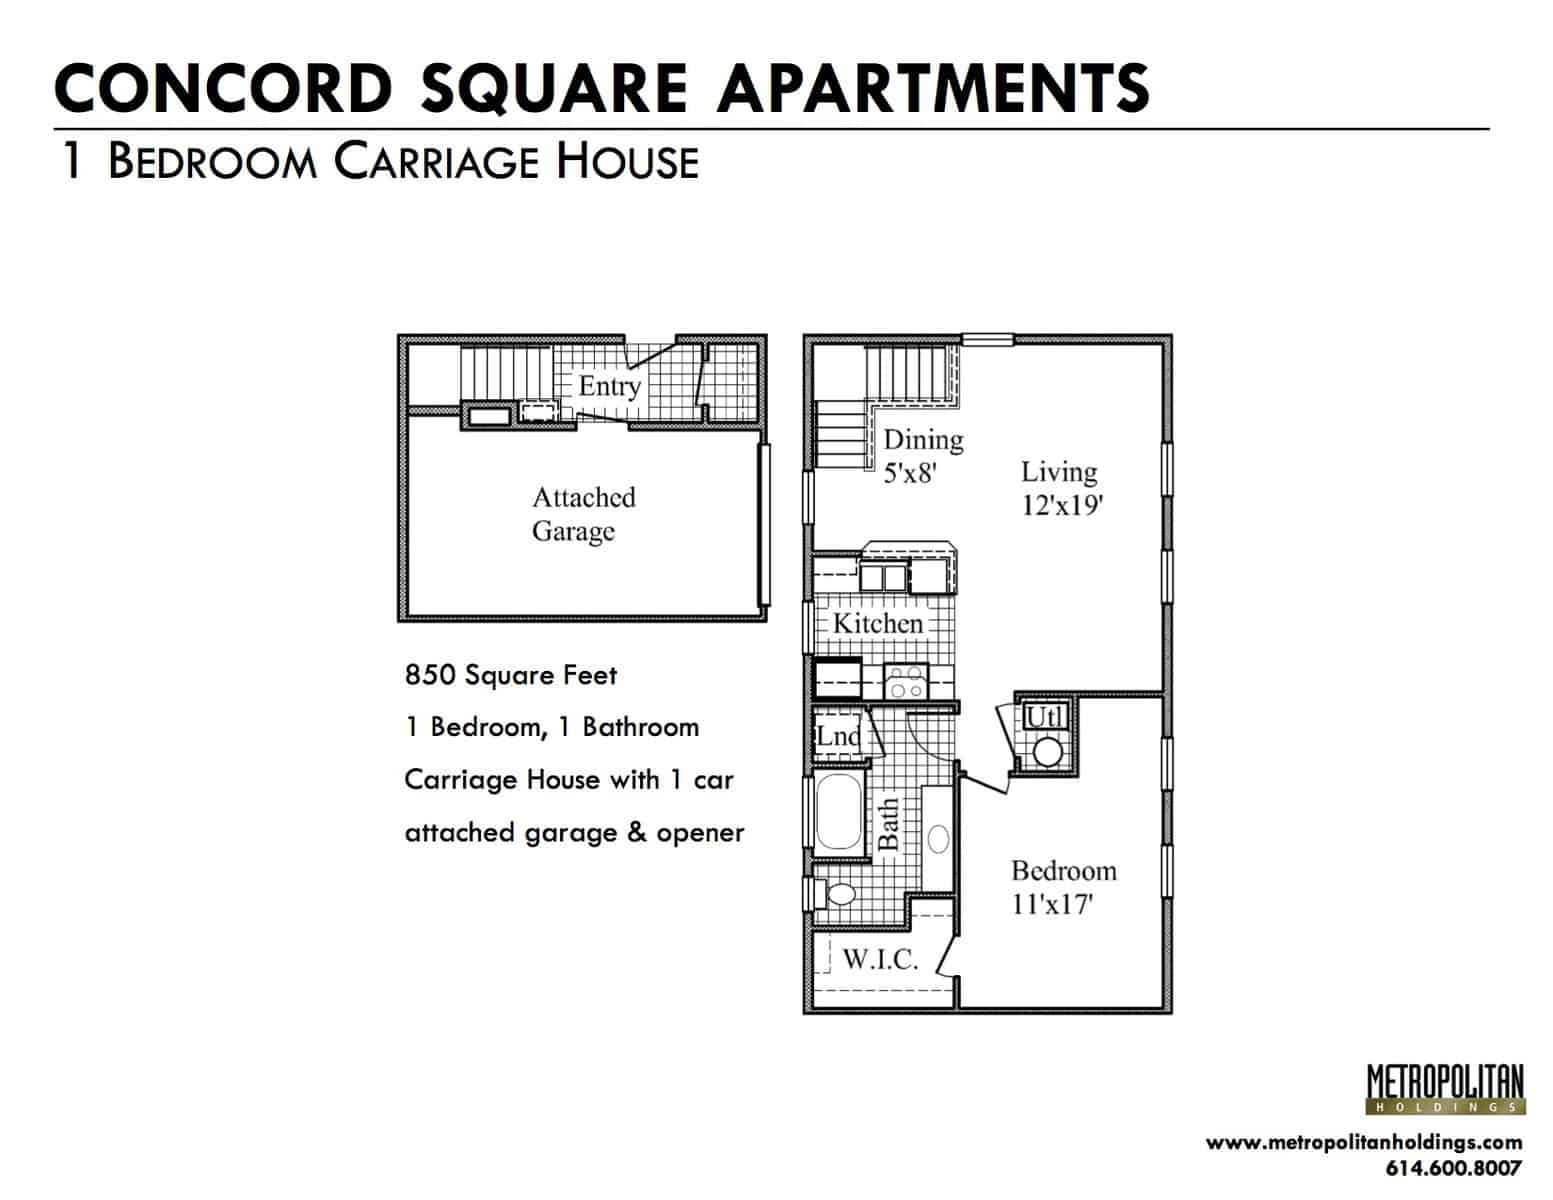 Concord-Square-1-BR-Carriage-House-3 Four Square House Floor Plans on four square home, 1930 montgomery ward house plan, four square house landscaping, simple 2 bedroom floor plan, four square house siding, four square house architecture, early 1900s american foursquare house plan, box bird house plan, ikea small home floor plan, four square house style,